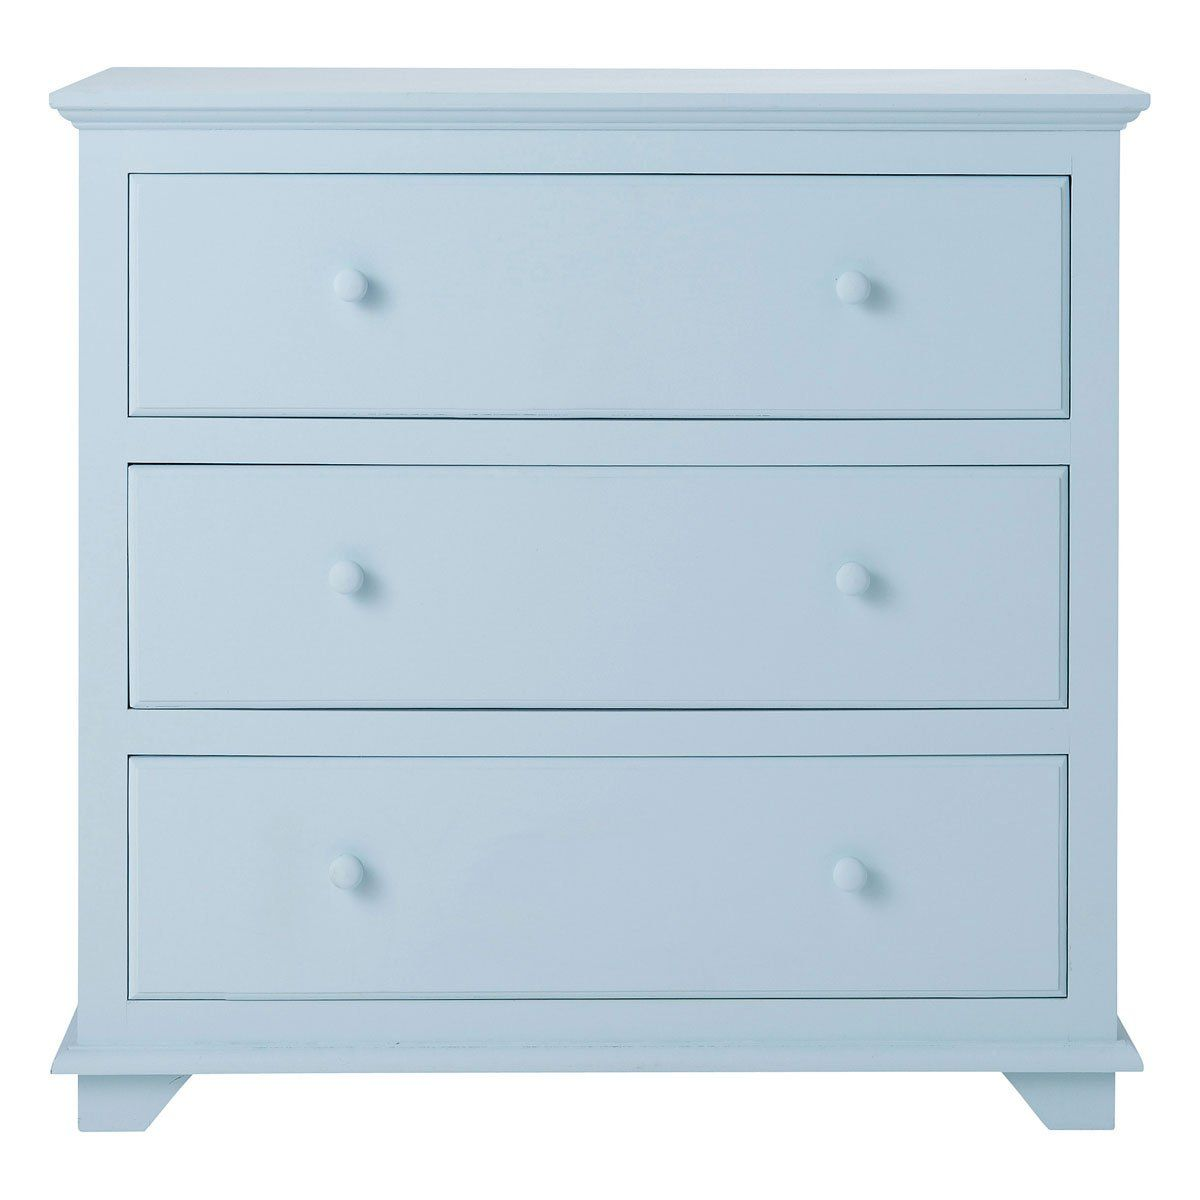 Commode Bleue Maison Du Monde Commode Enfant Bleue Pastel Decoration Commode Bleu Commode